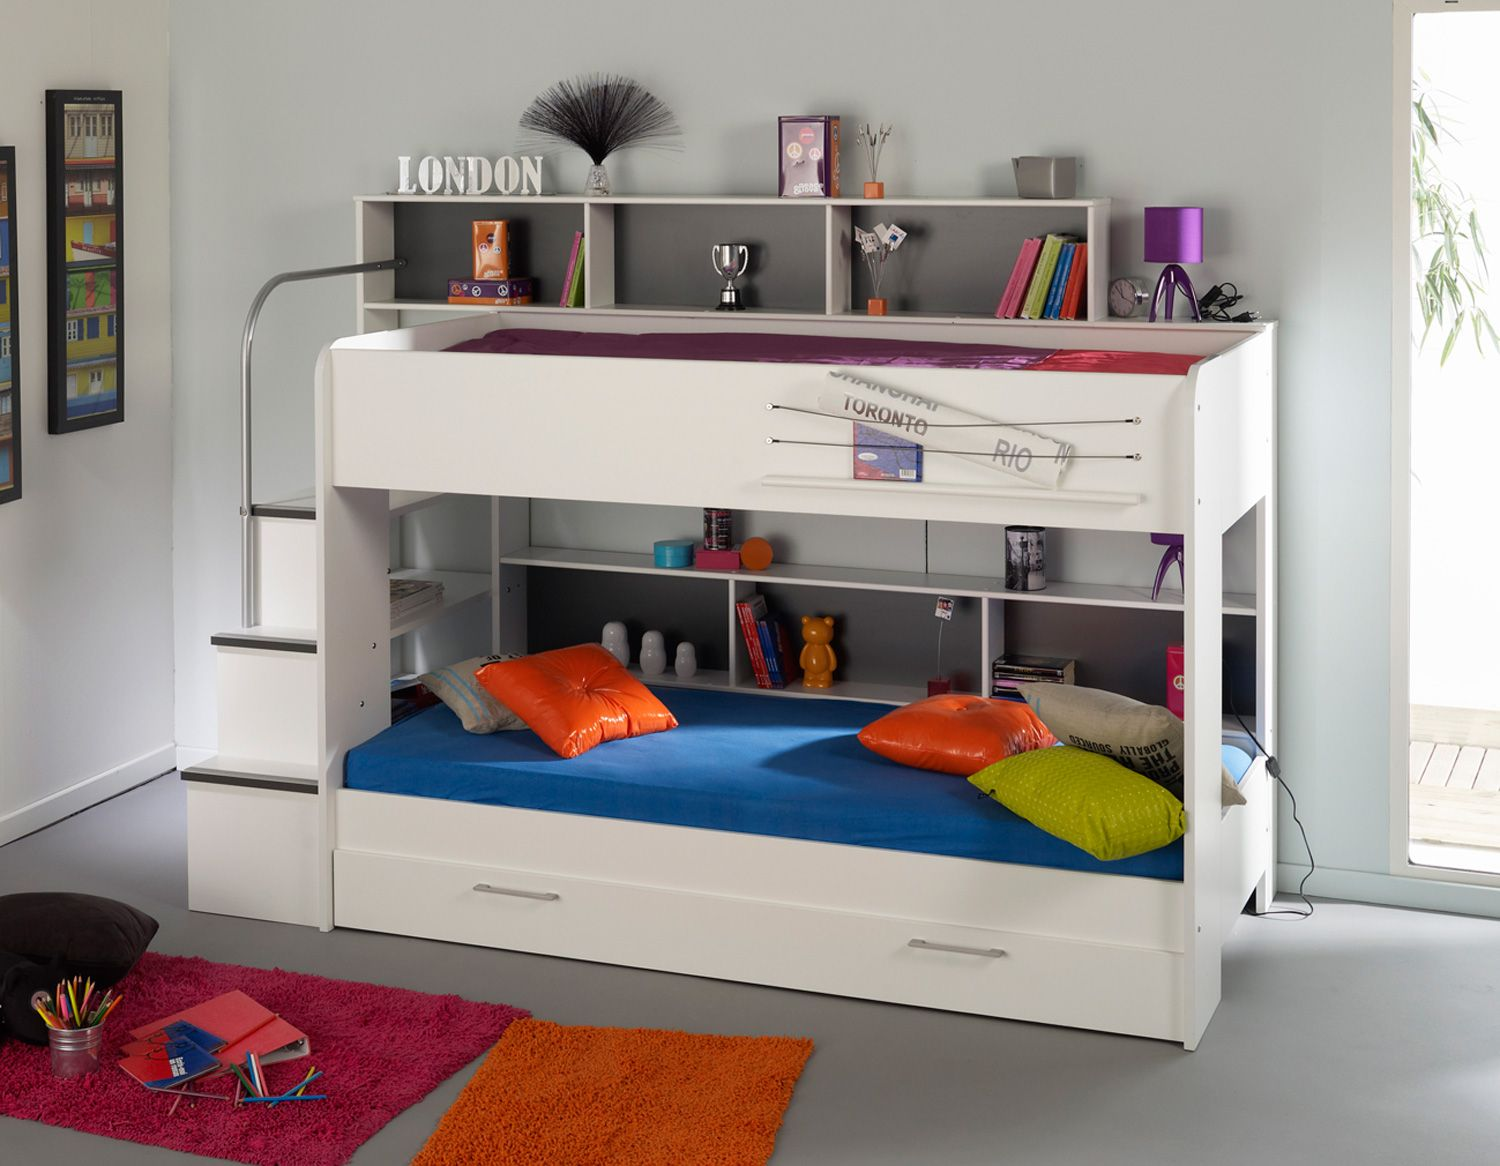 Childrens Bunk Beds small childrens bunk beds | latitudebrowser